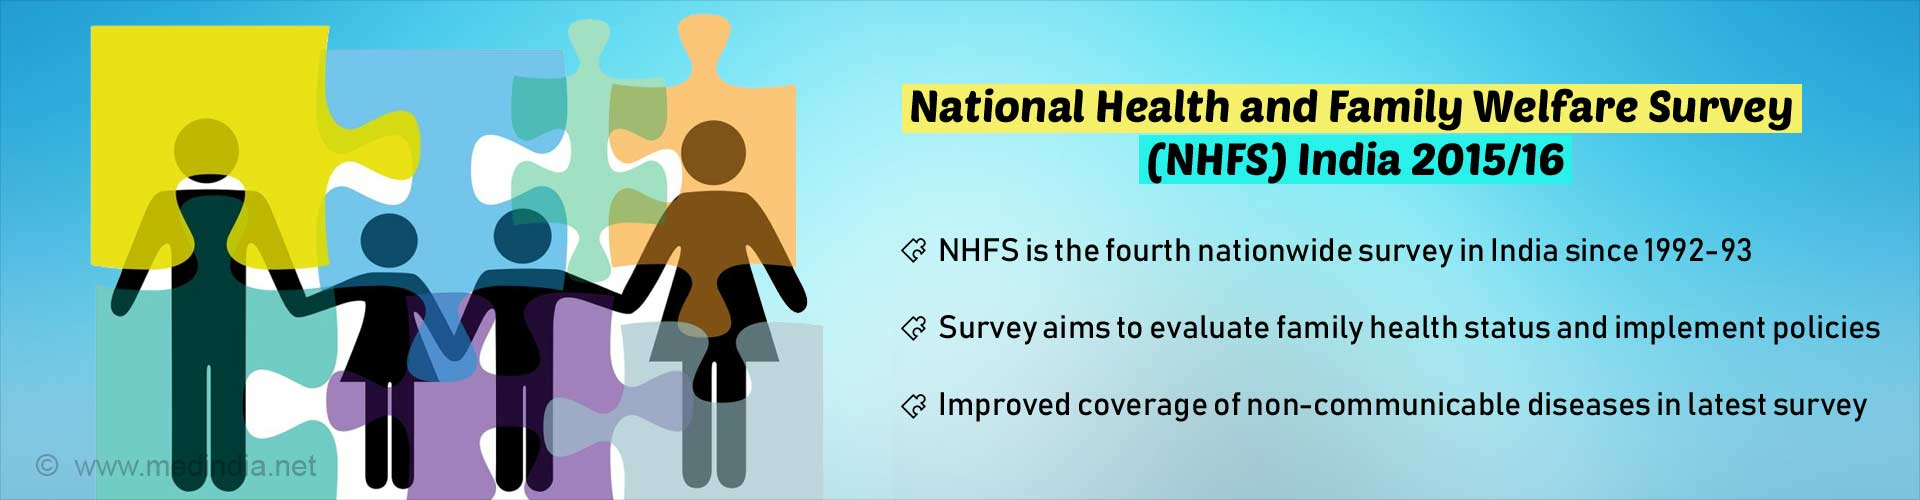 National Family Health Survey 2015/16 Finds Overall Improved Family Health